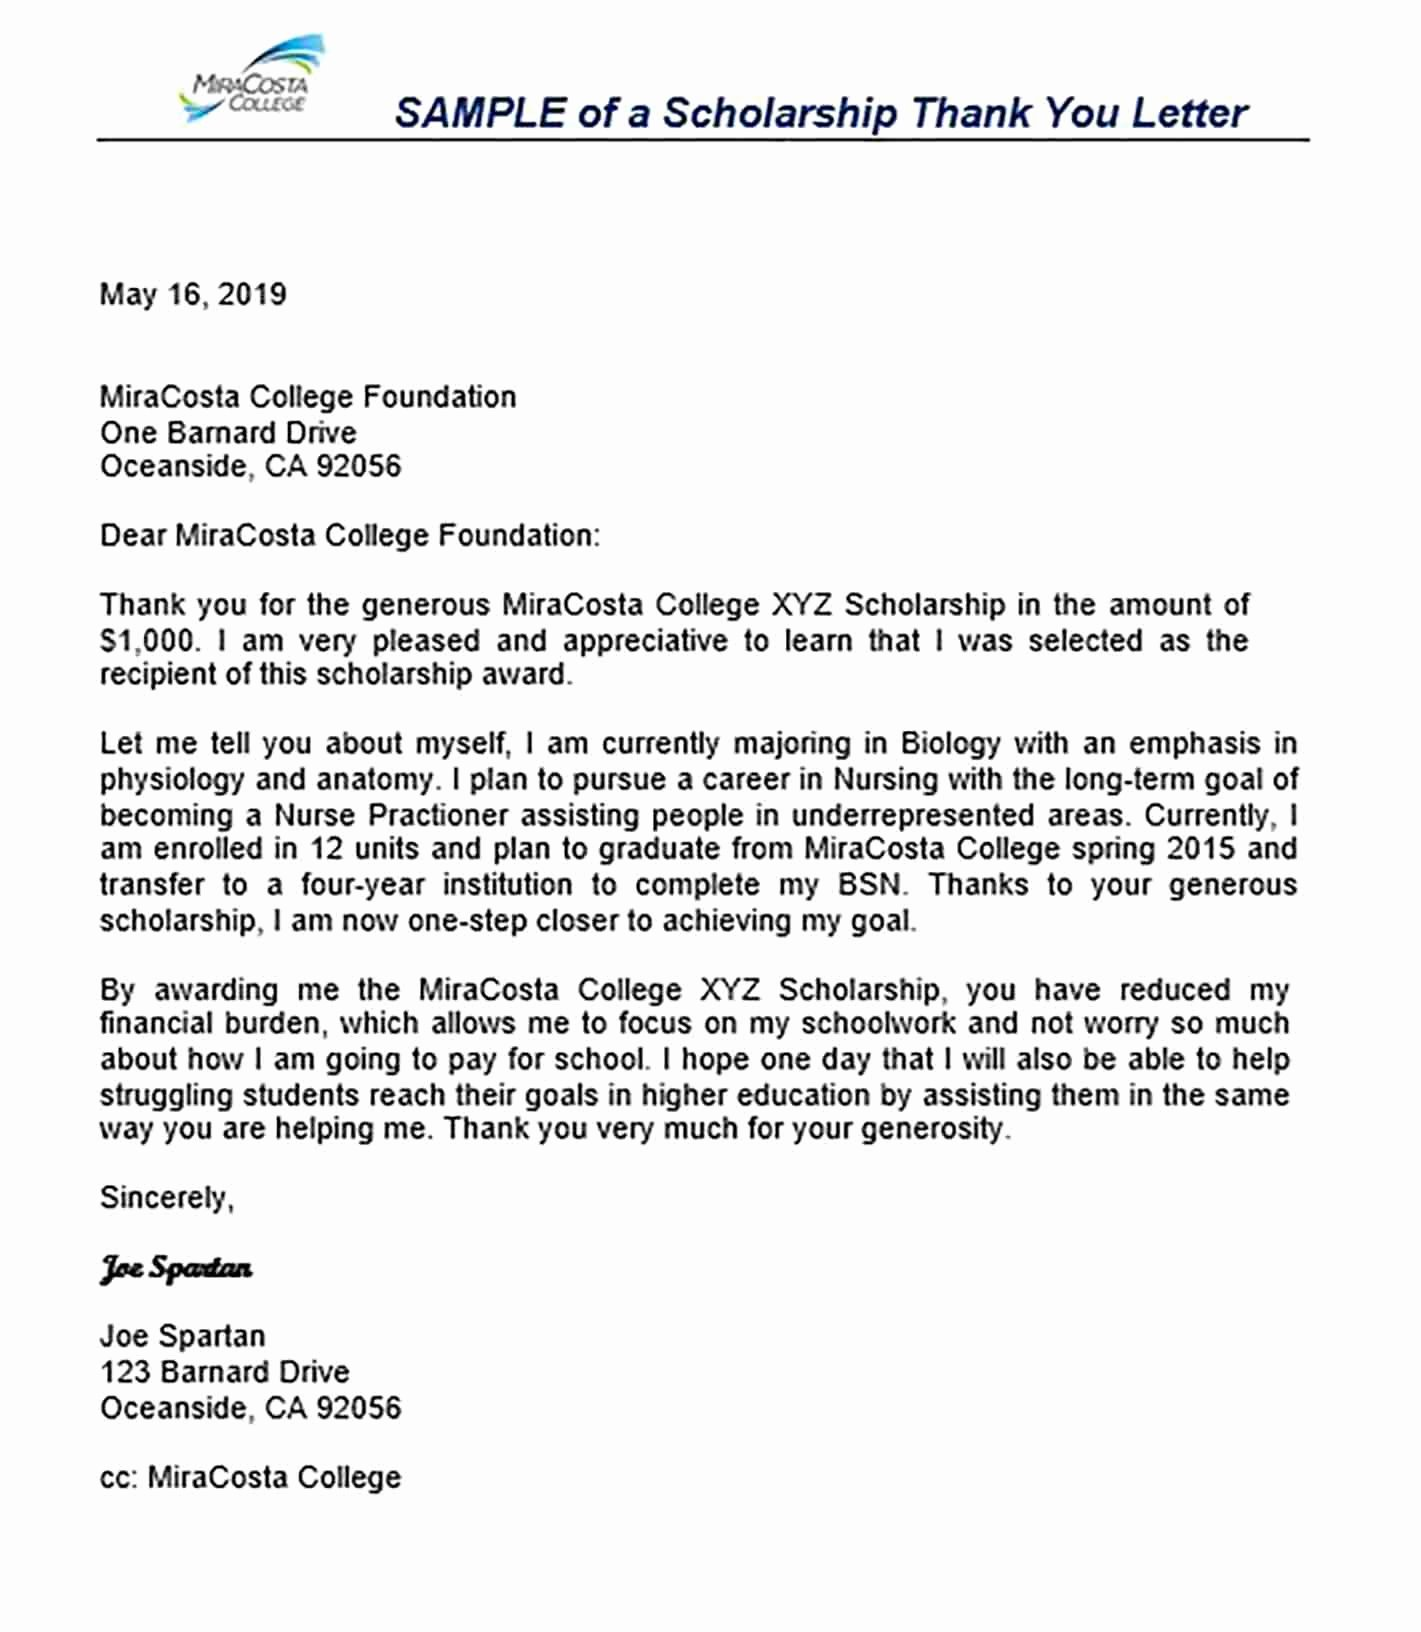 Scholarship Thank You Letter Template Fresh 11 Scholarship Thank You Letter Sample for Doc Pdf Words